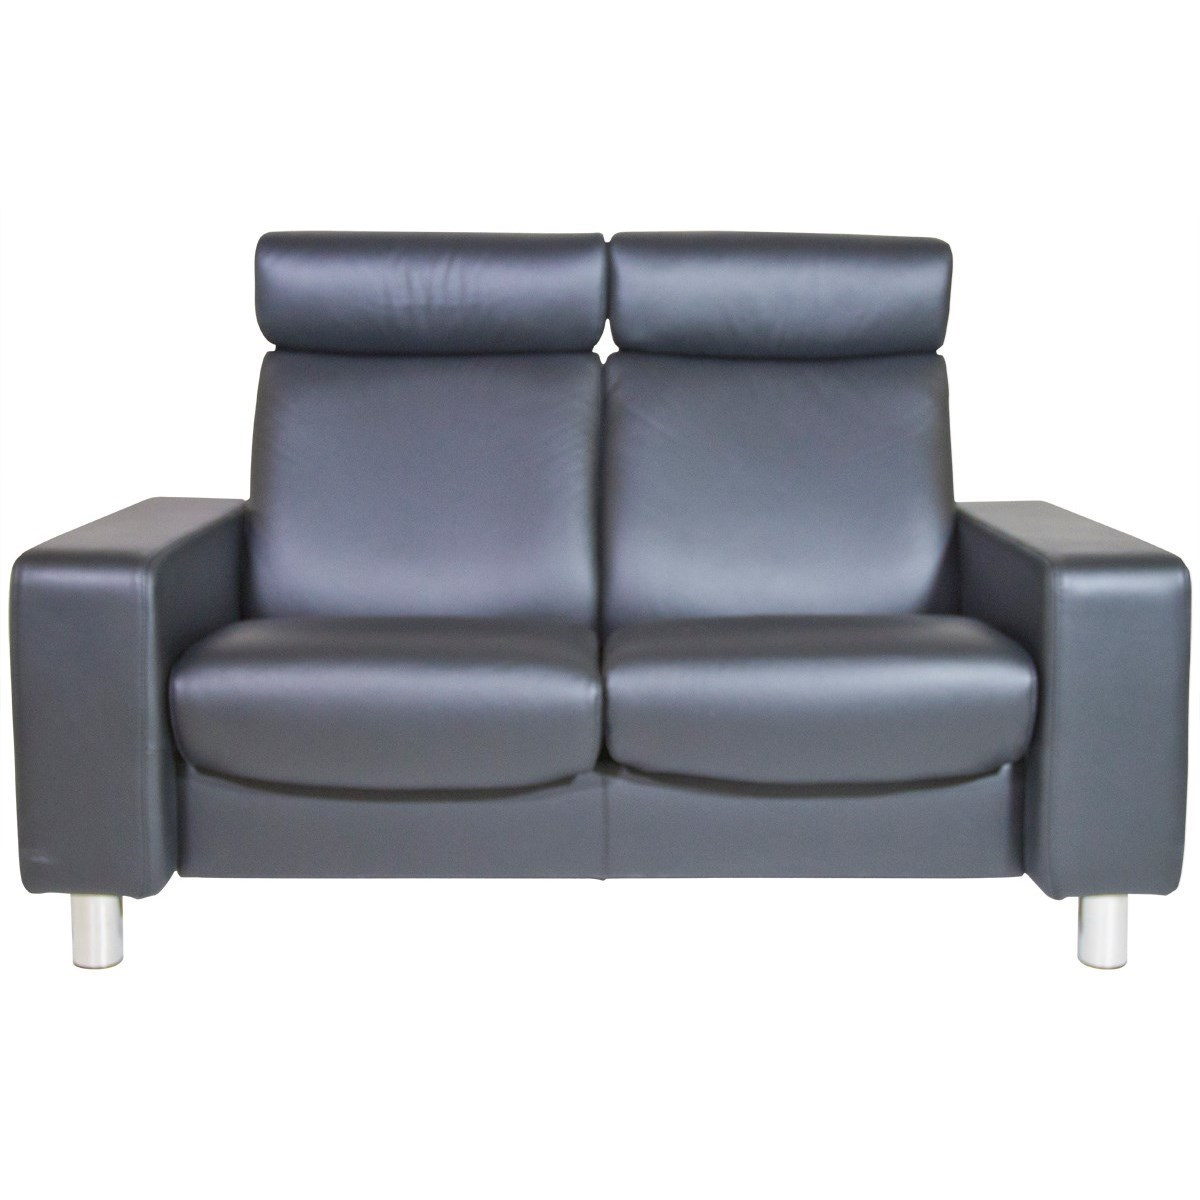 Stressless PauseHighBack Reclining Loveseat  High Back Loveseat22